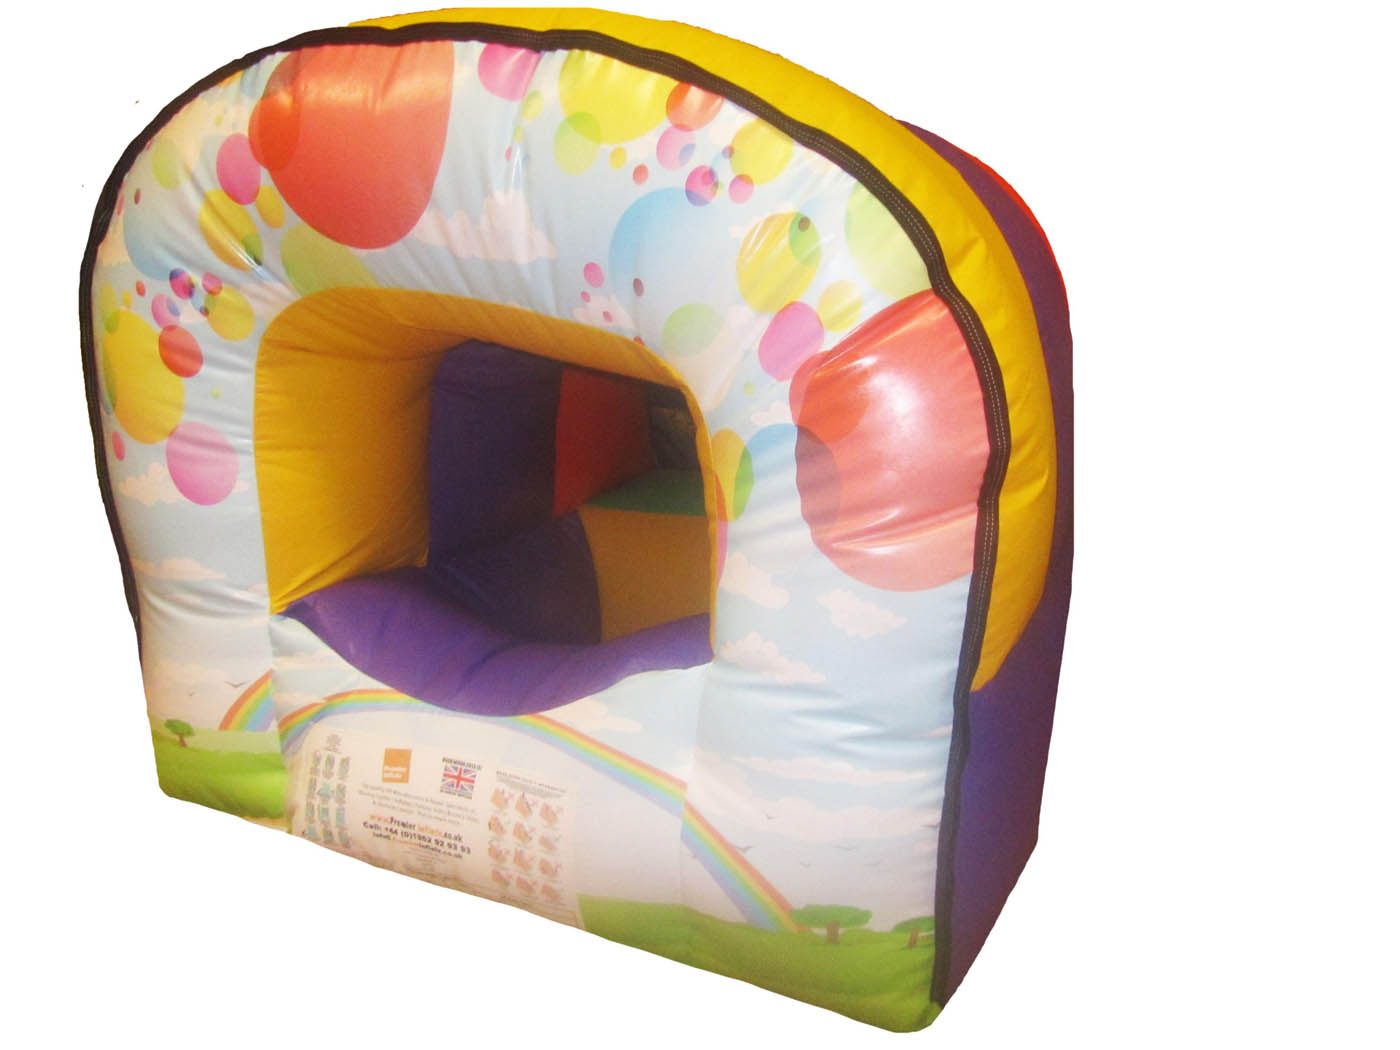 Sensory Inflatable Childrens Soft Play Dome